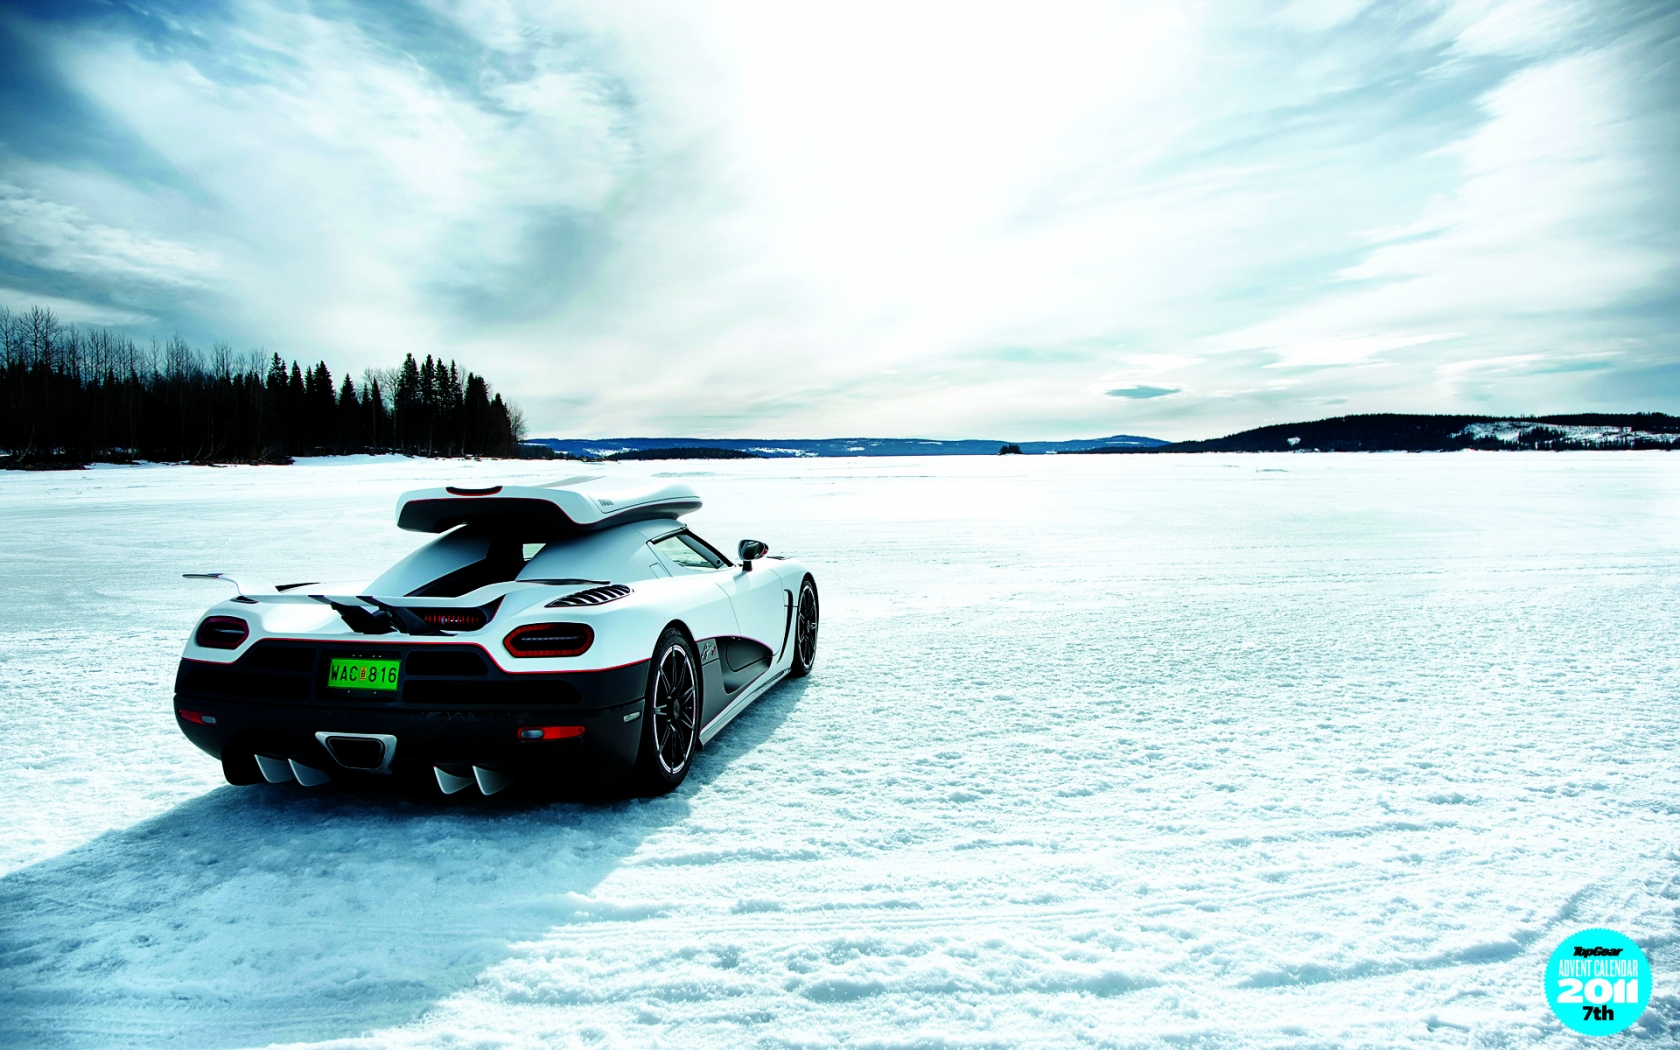 Koenigsegg Agera R for 1680 x 1050 widescreen resolution